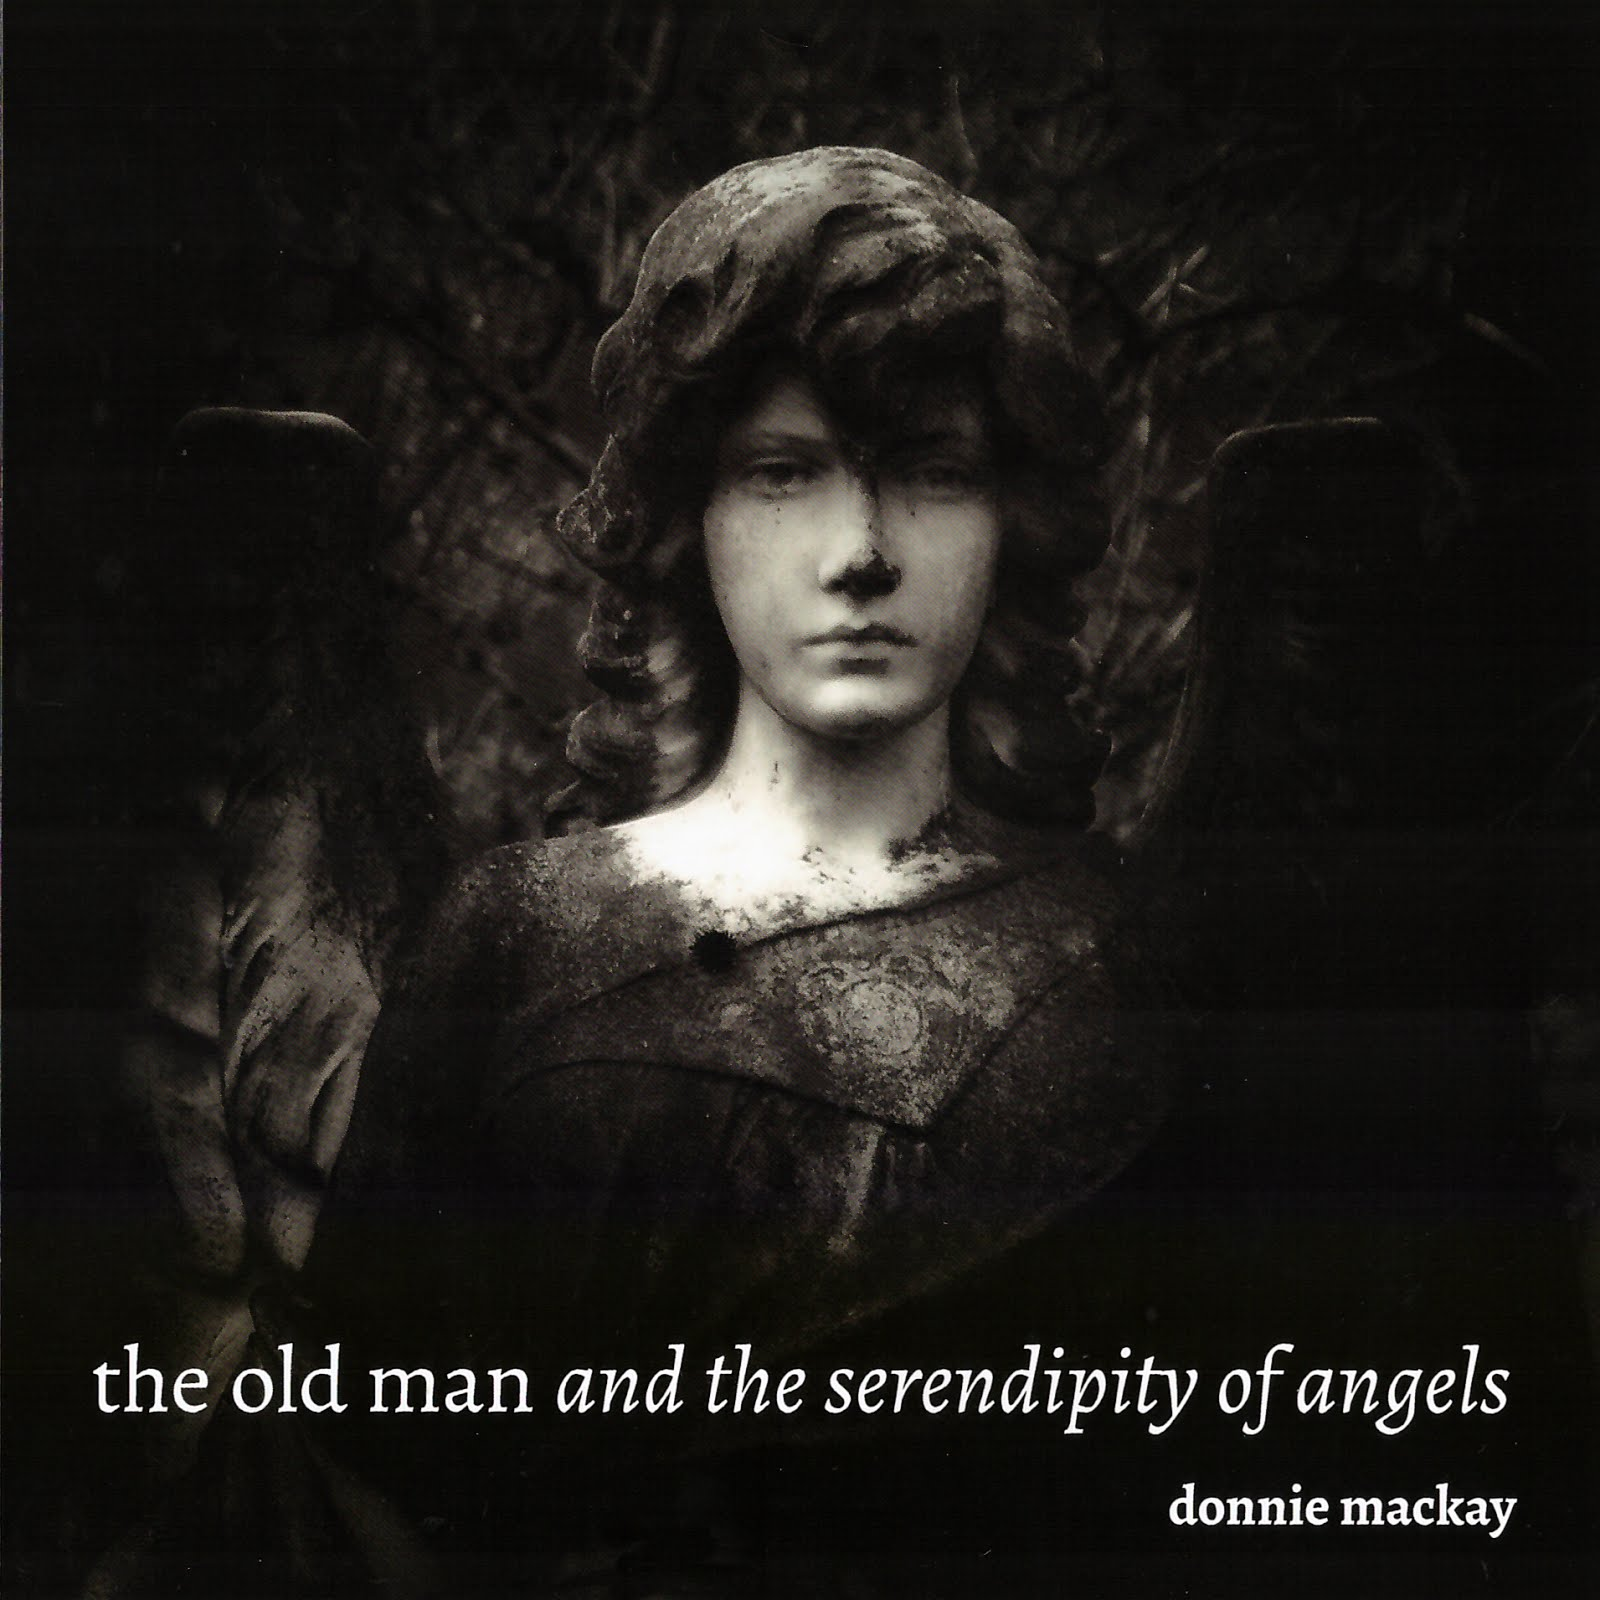 NEW BOOK JUST PUBLISHED - 100 PAGES - THE OLD MAN AND THE SERENDIPITY OF ANGELS